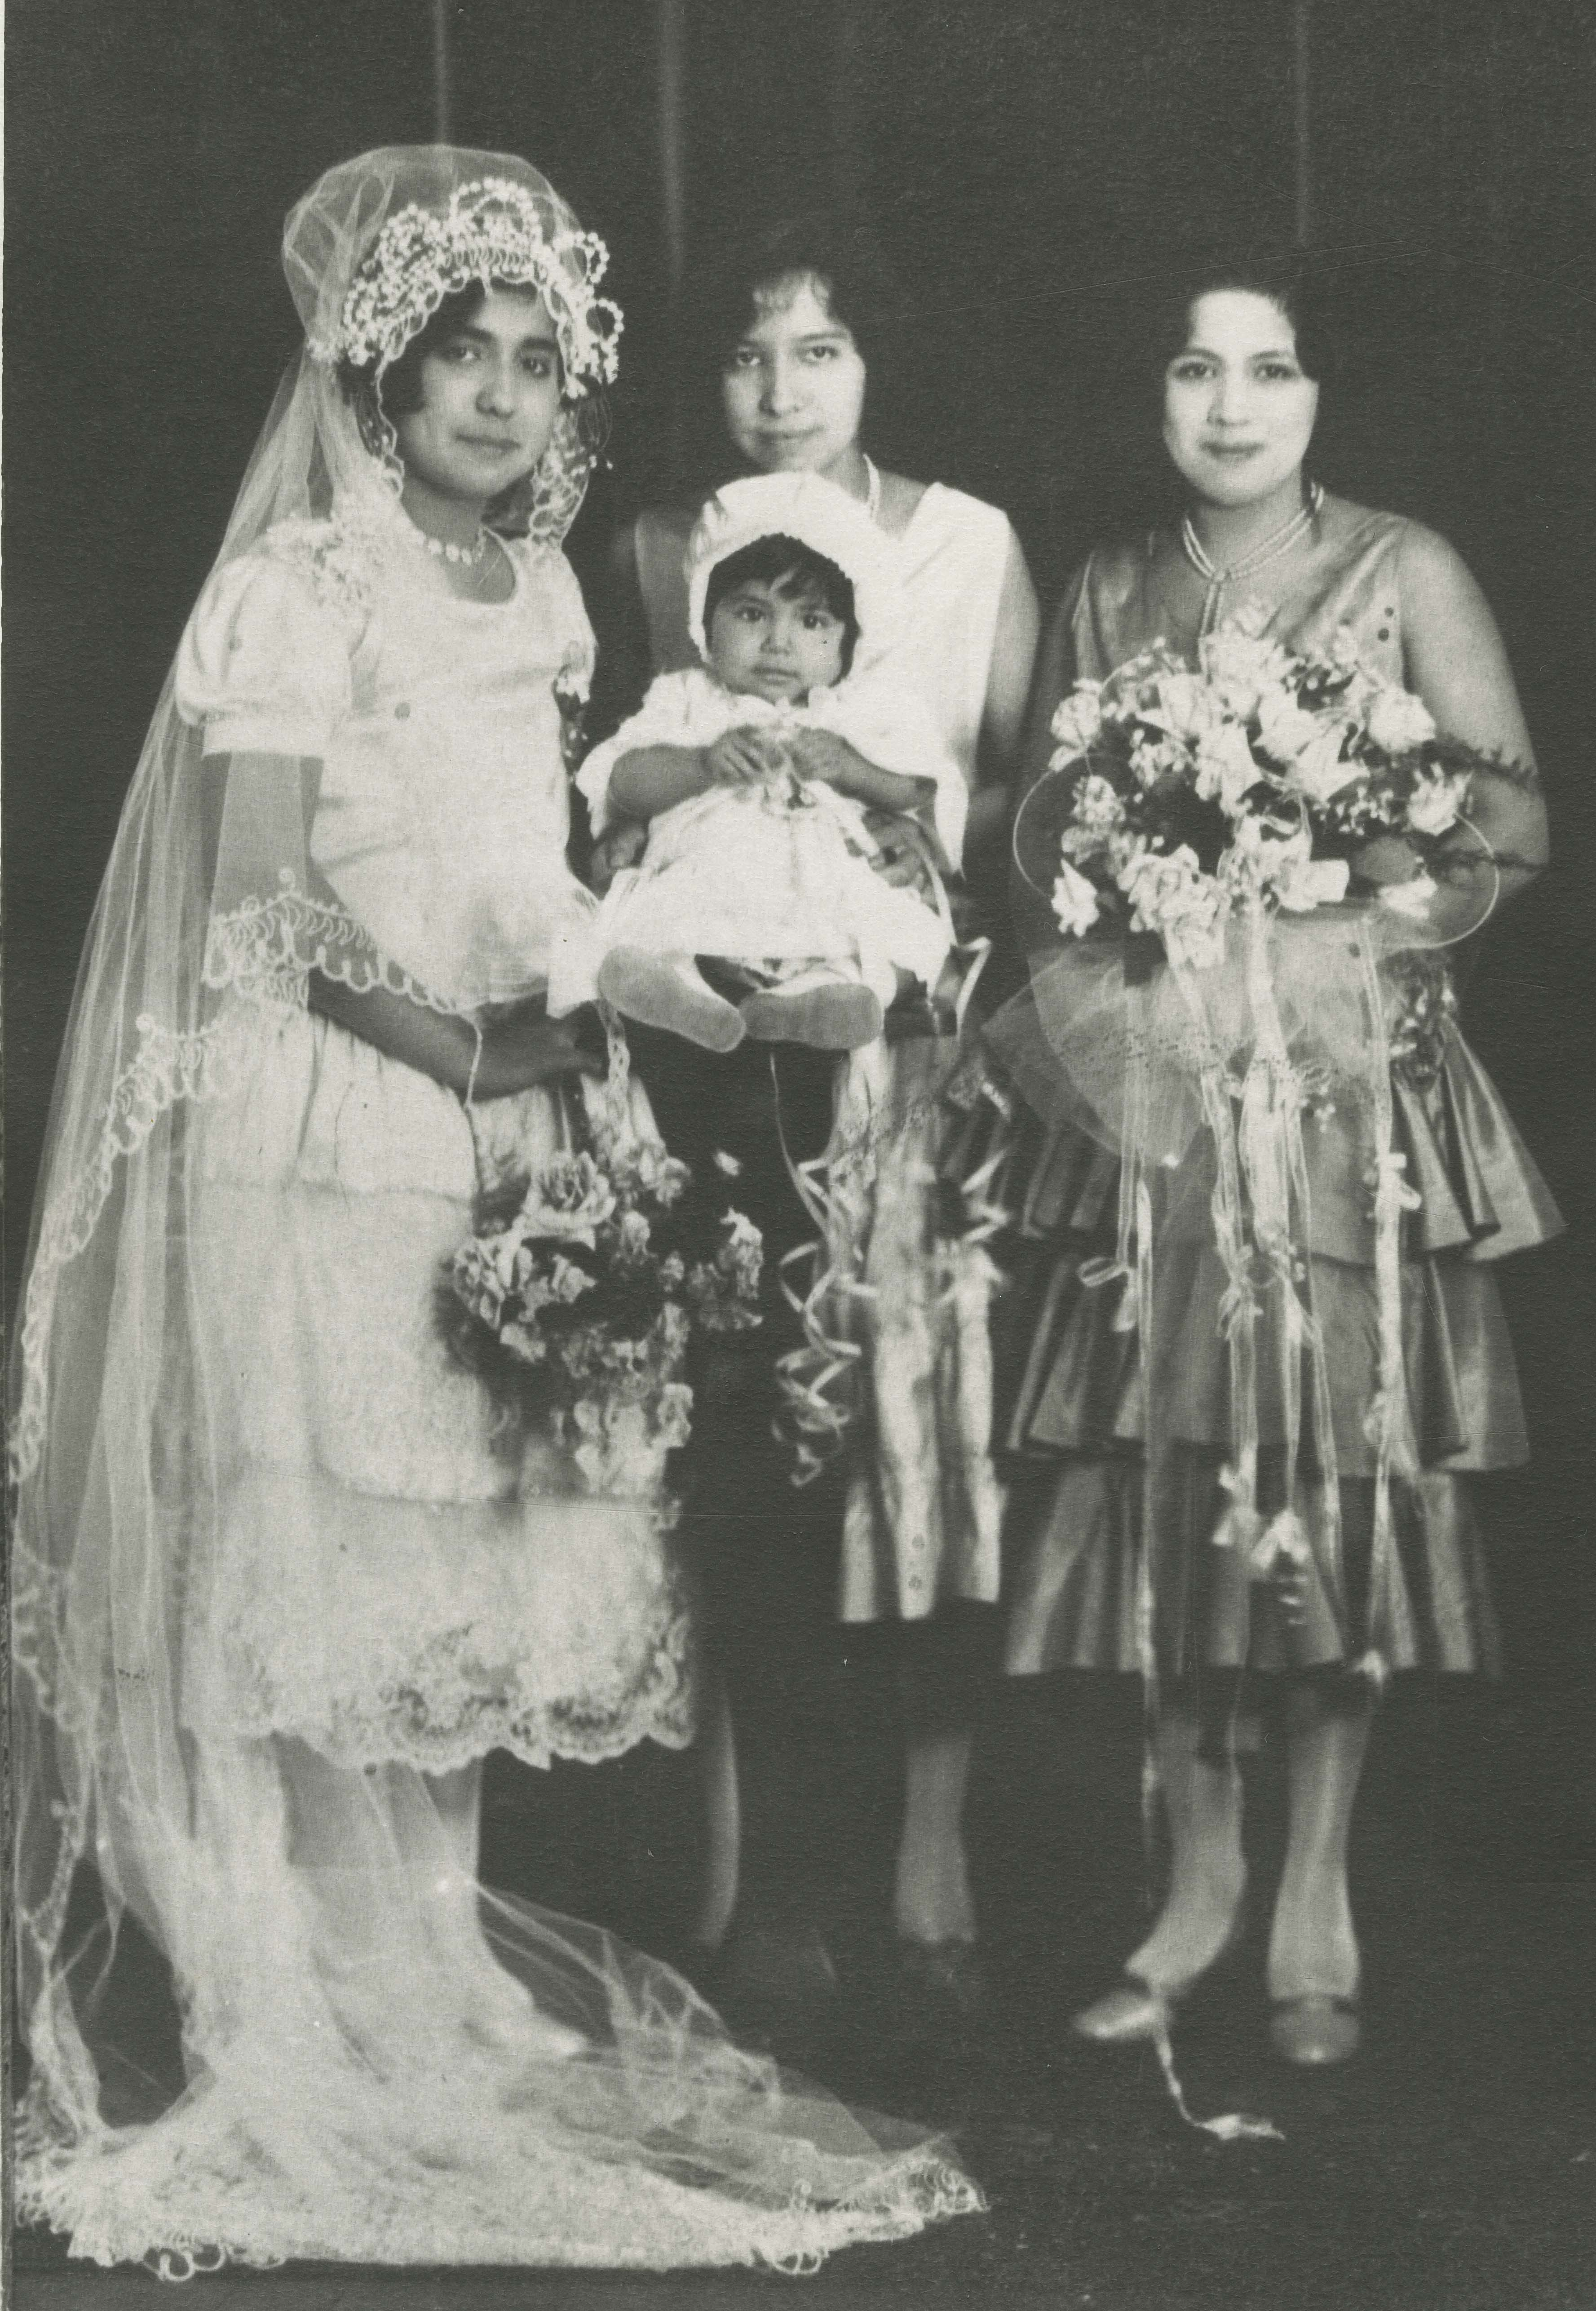 Bride and attendants in their wedding clothes.